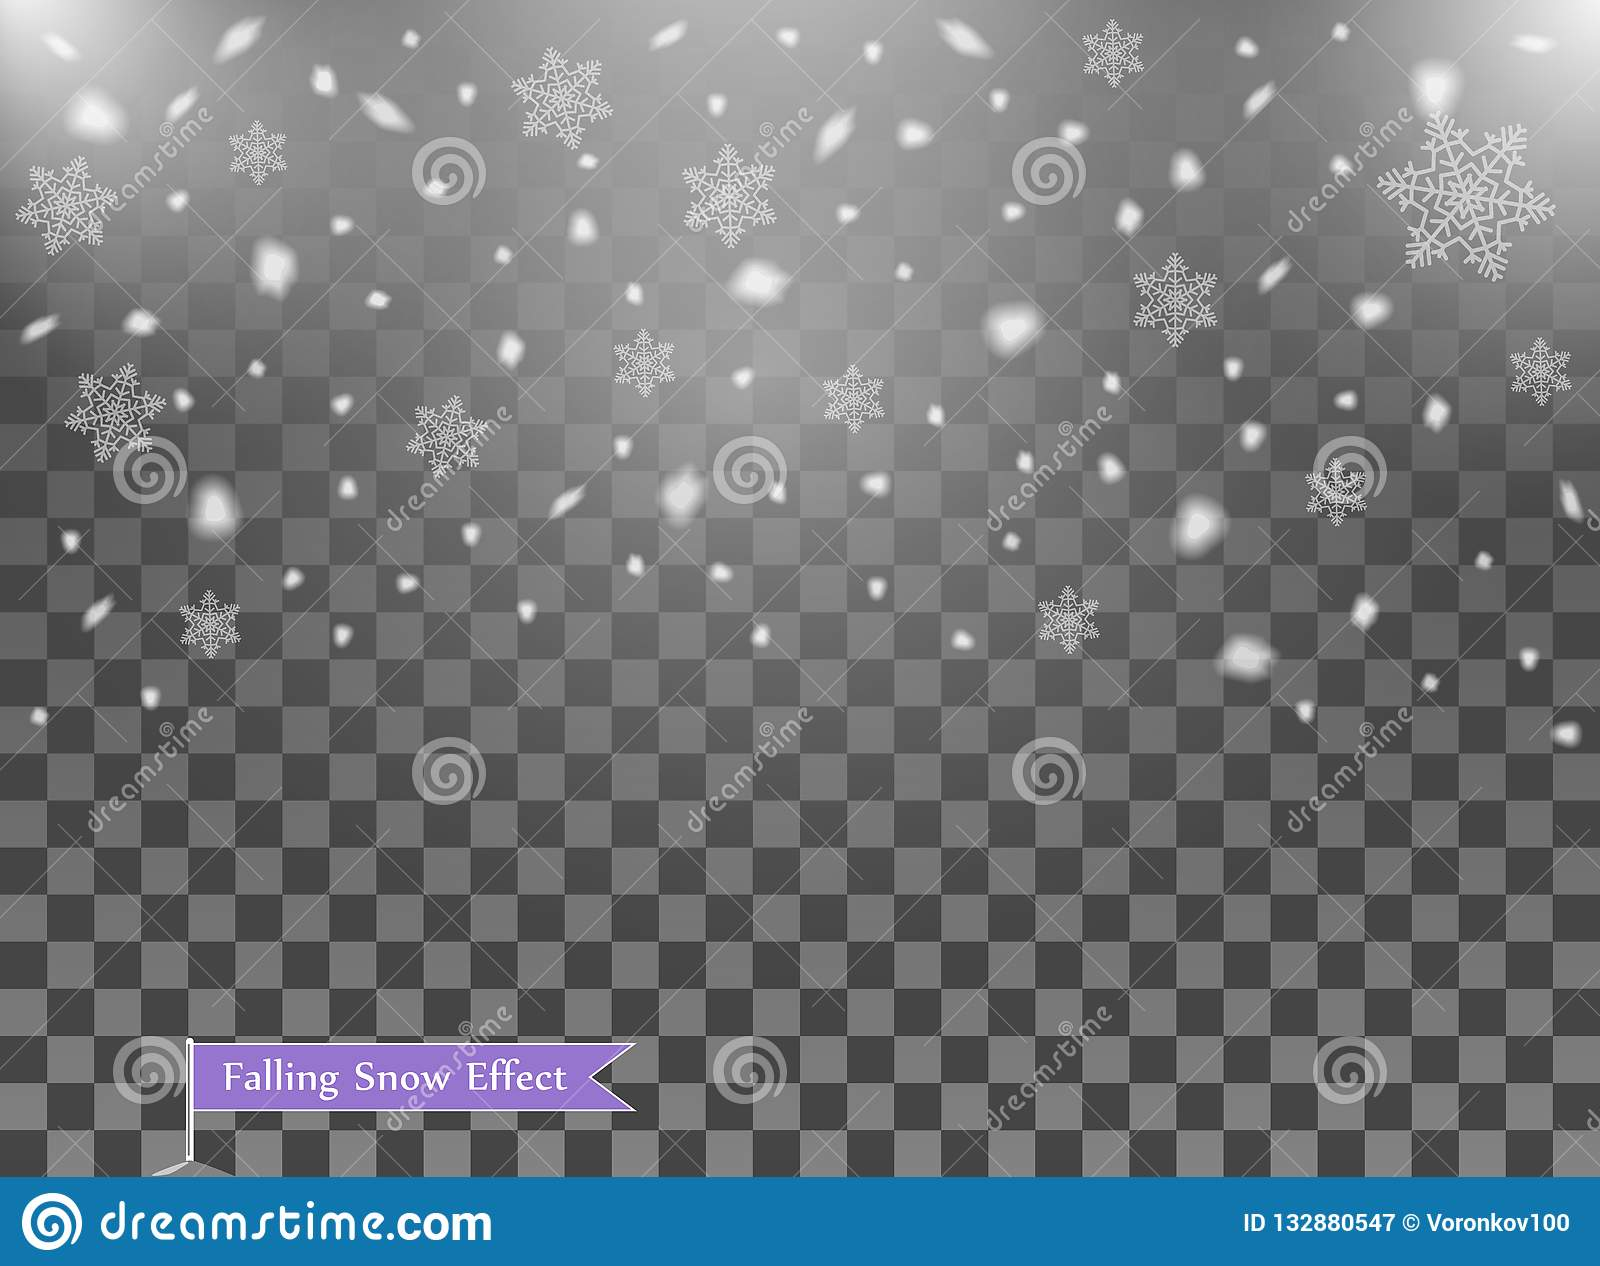 Falling snow, random elements. New year, Christmas decor overlay. Vector illustration on isolated transparent background.